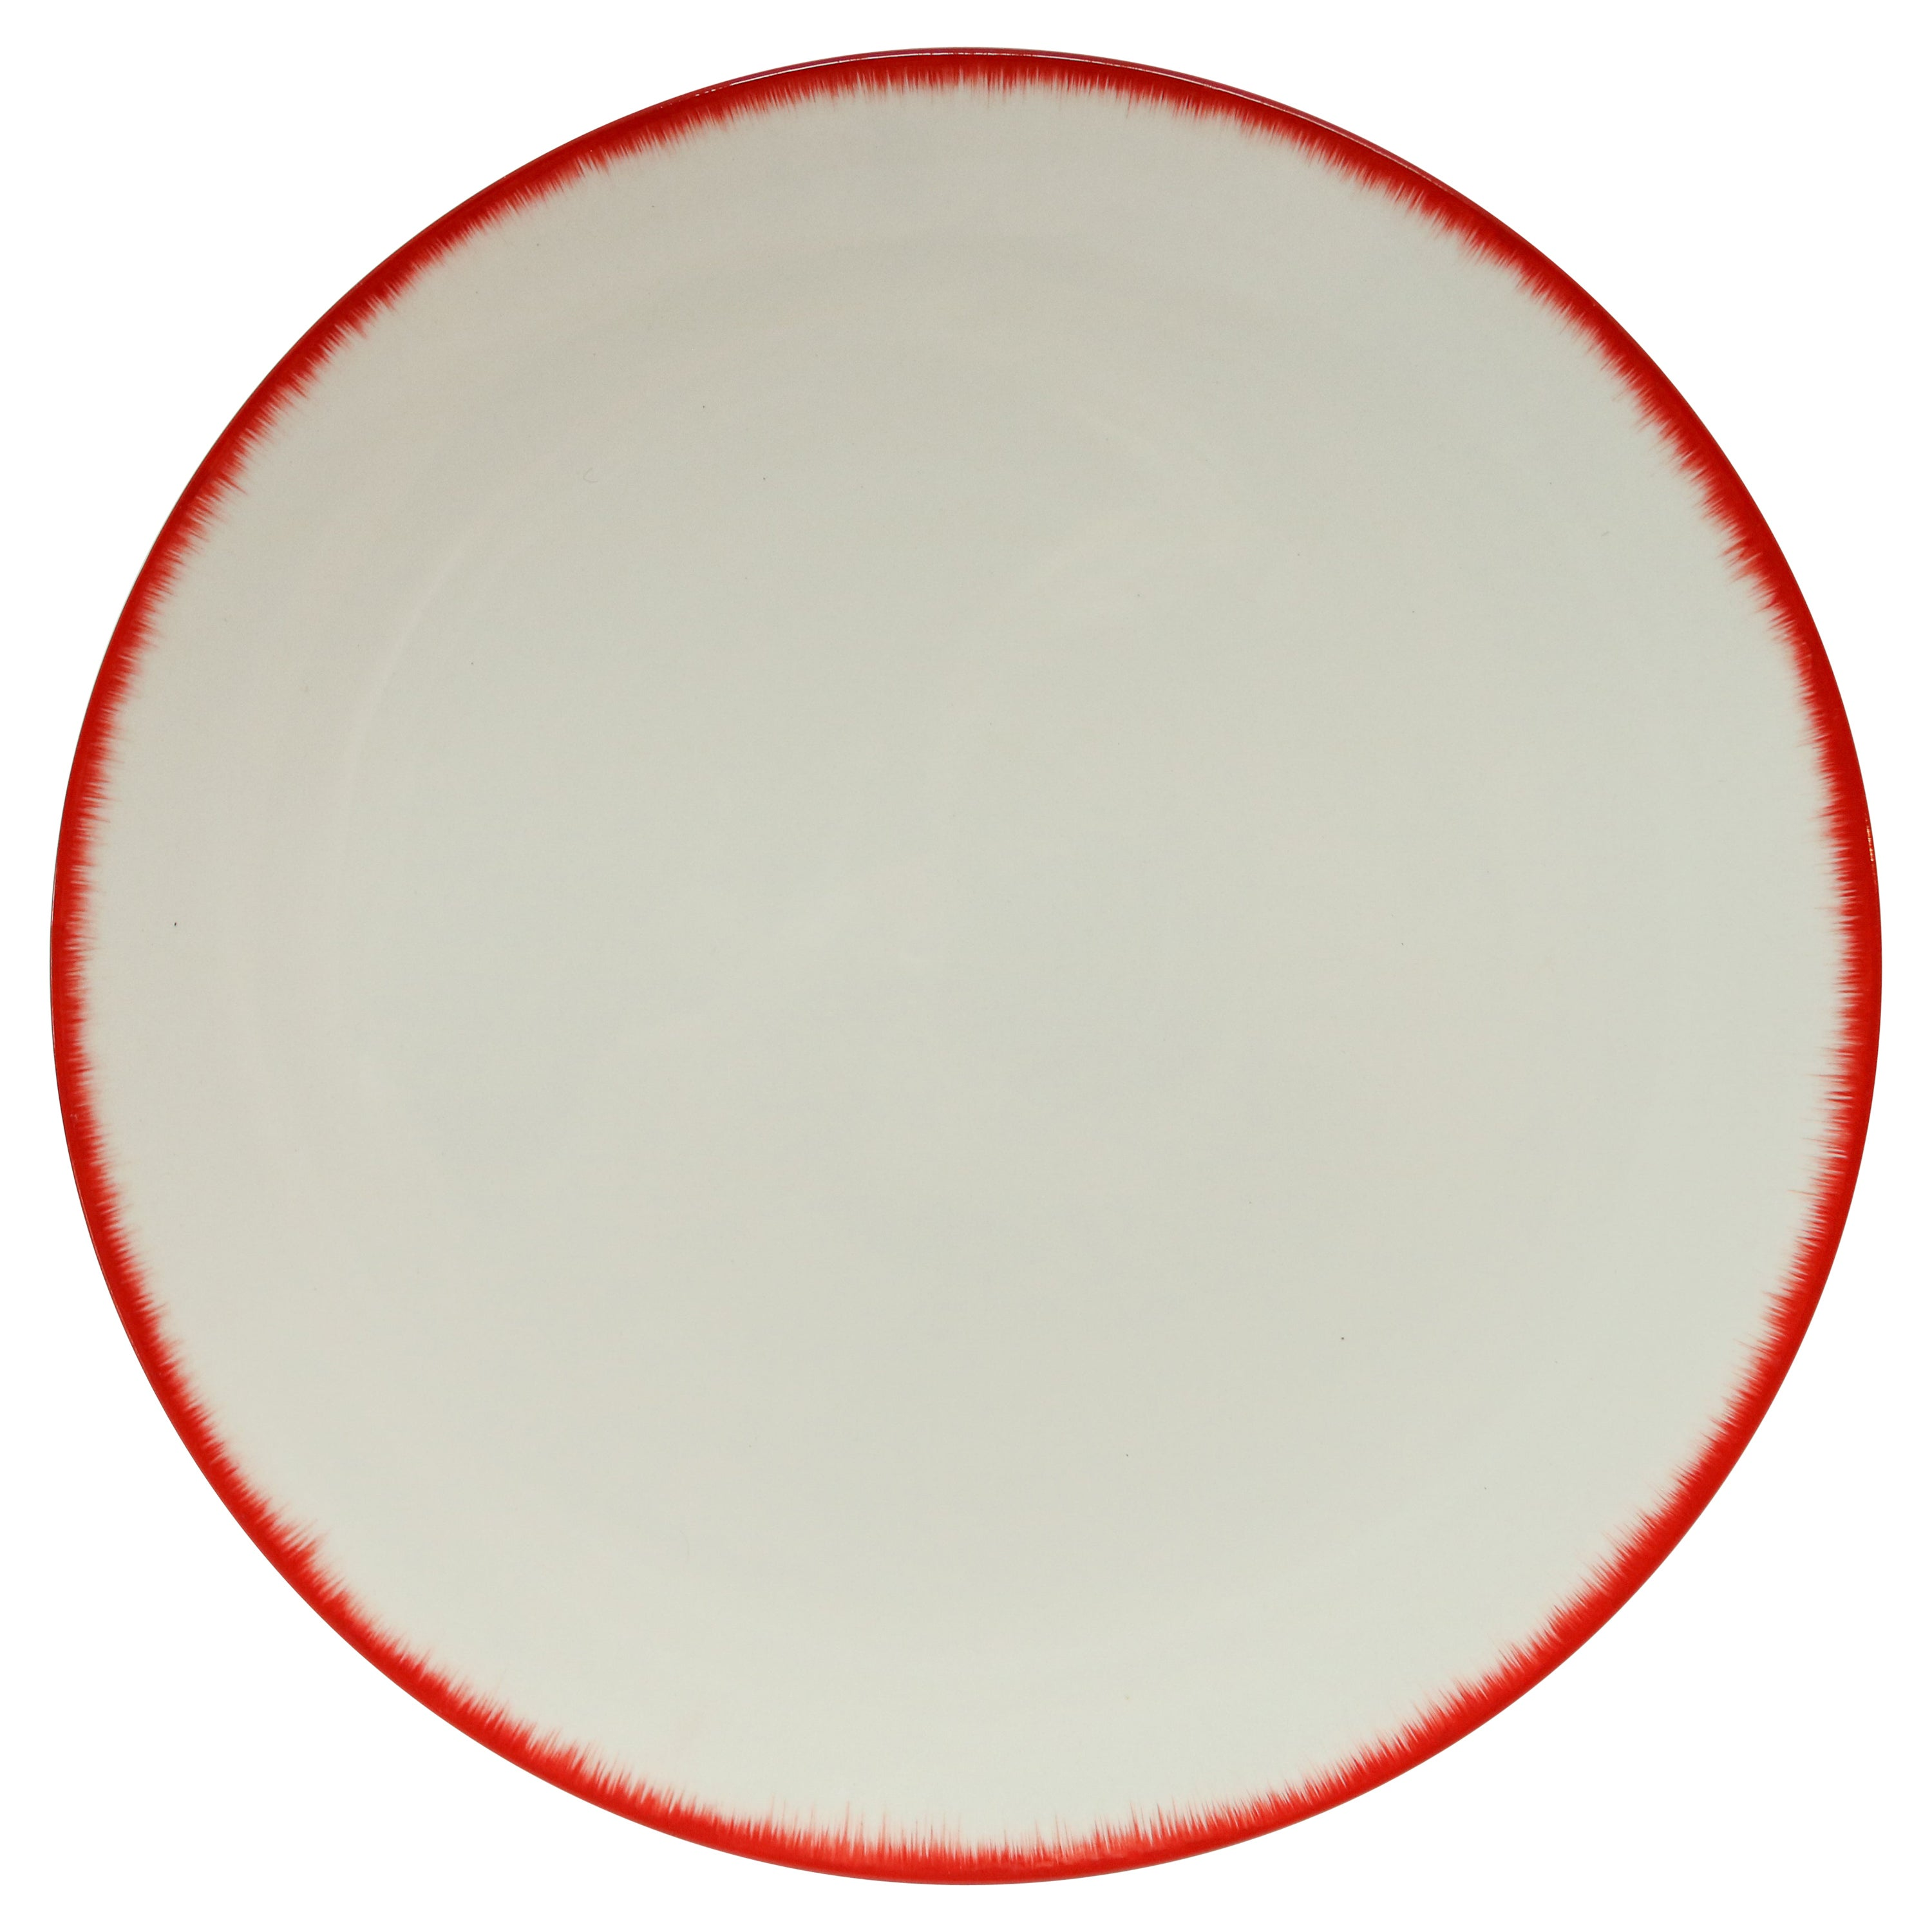 Ann Demeulemeester for Serax Dé Dinner Plate / Charger in Off White / Red Rim